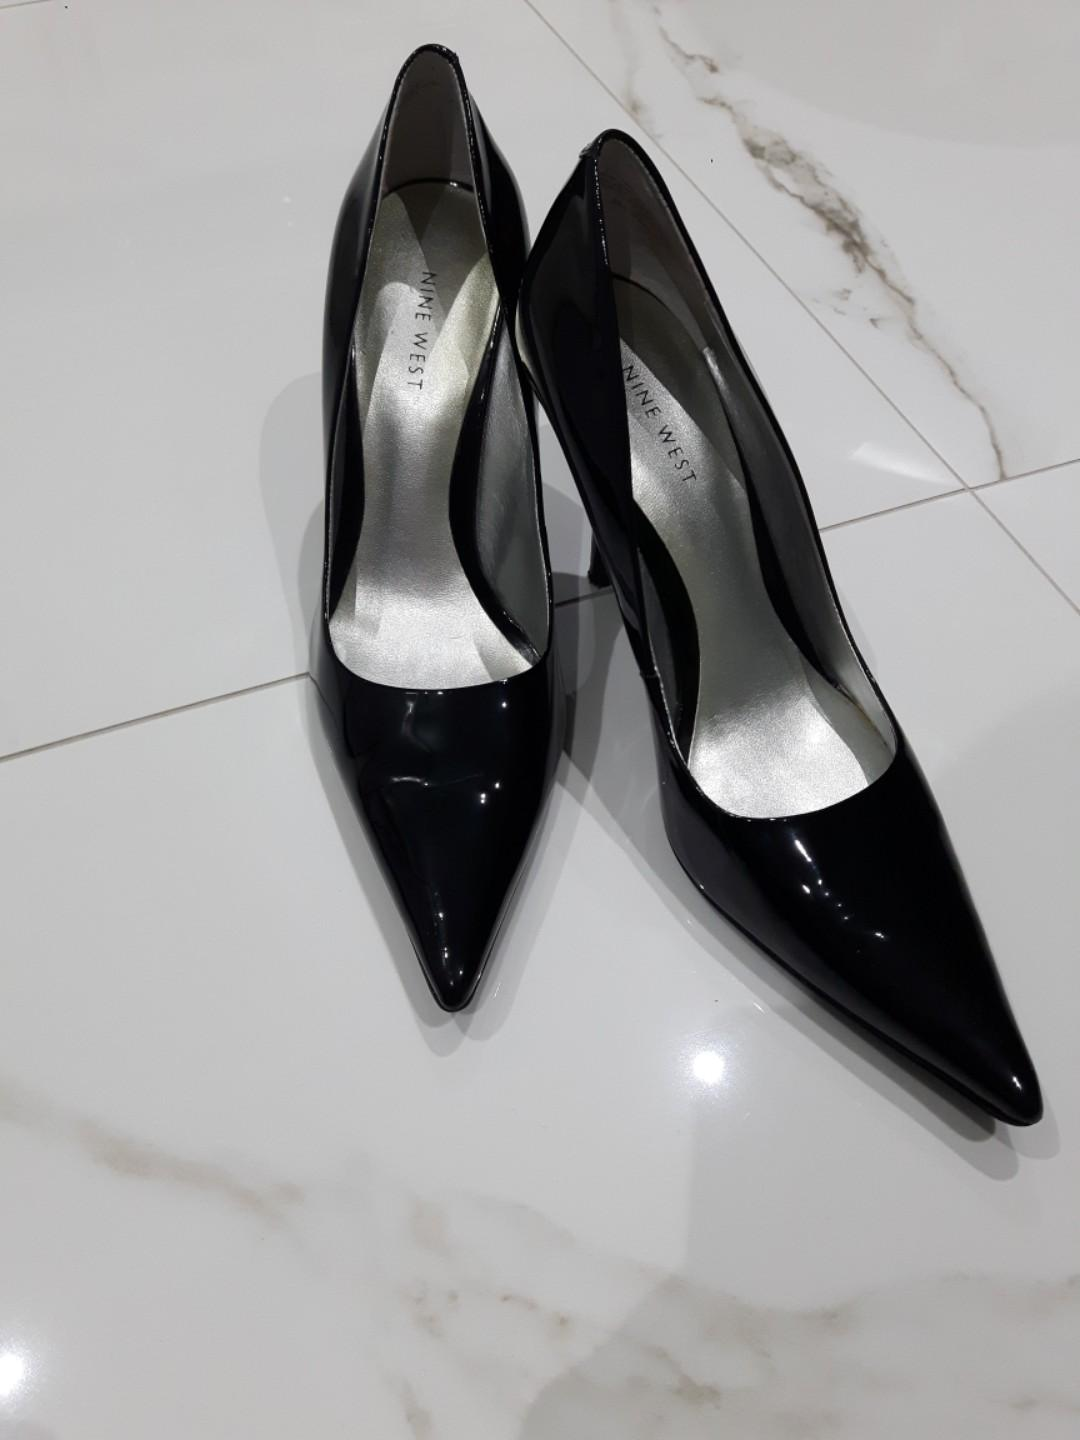 LEATHER-NINE WEST GLOSSY STILETTOS SIZE 9-long pointed